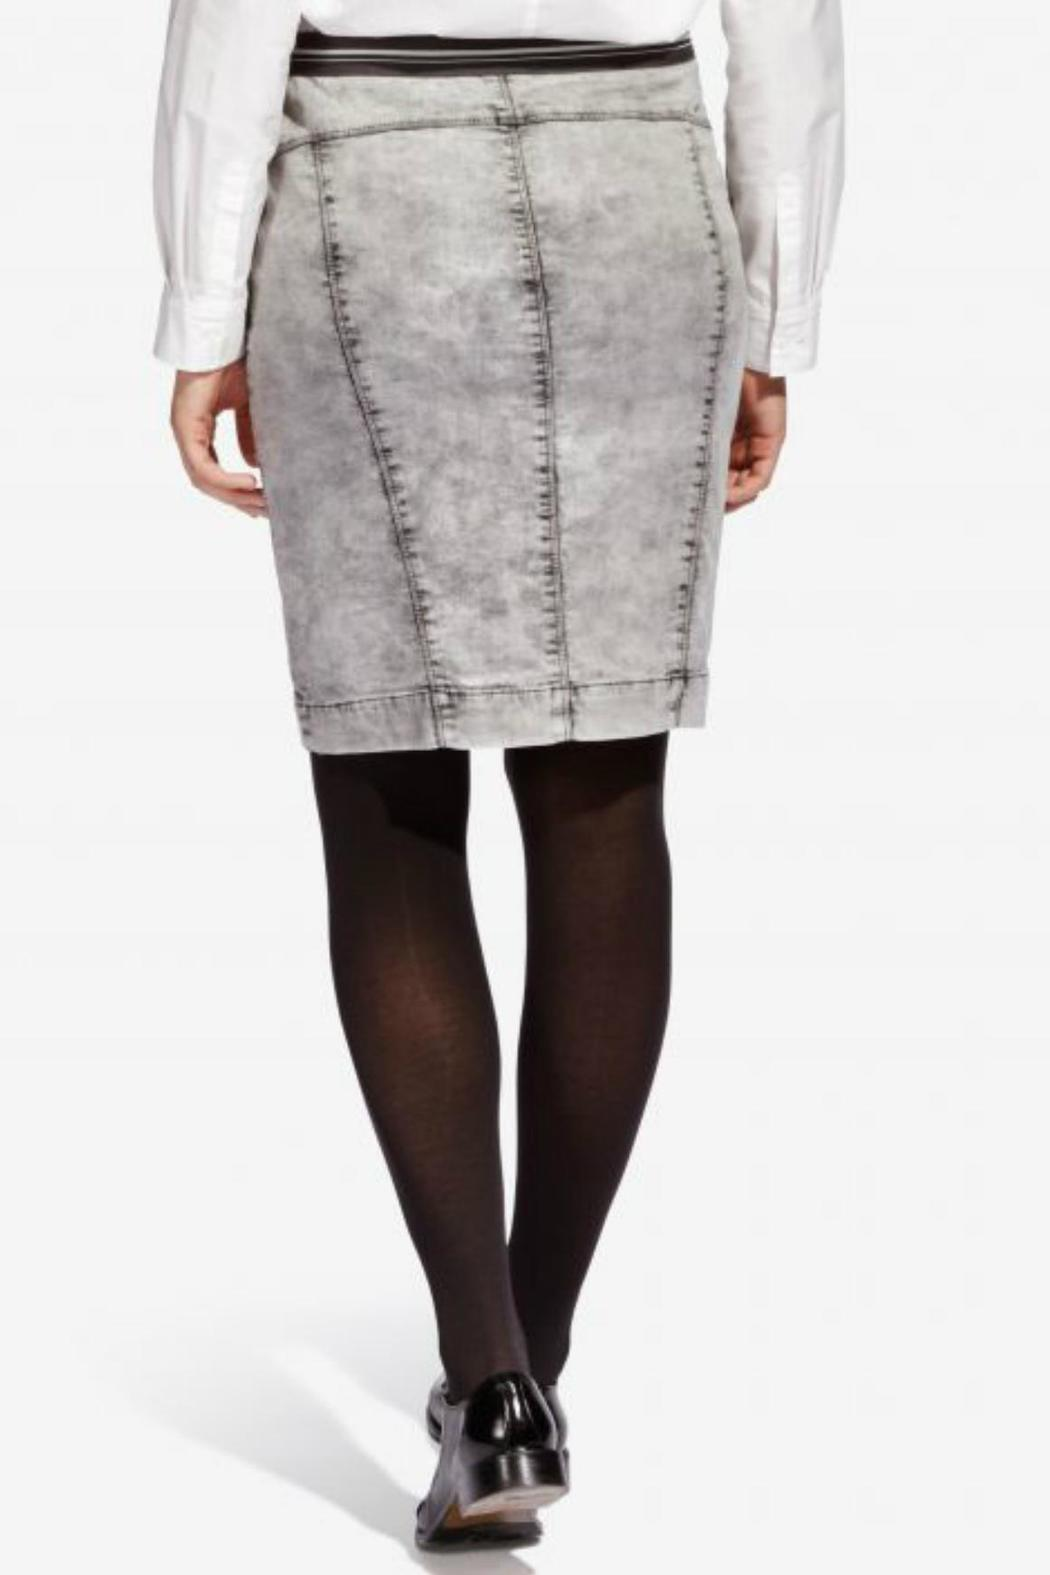 Sandwich Clothing Denim Skirt from Canada by Moxxi — Shoptiques